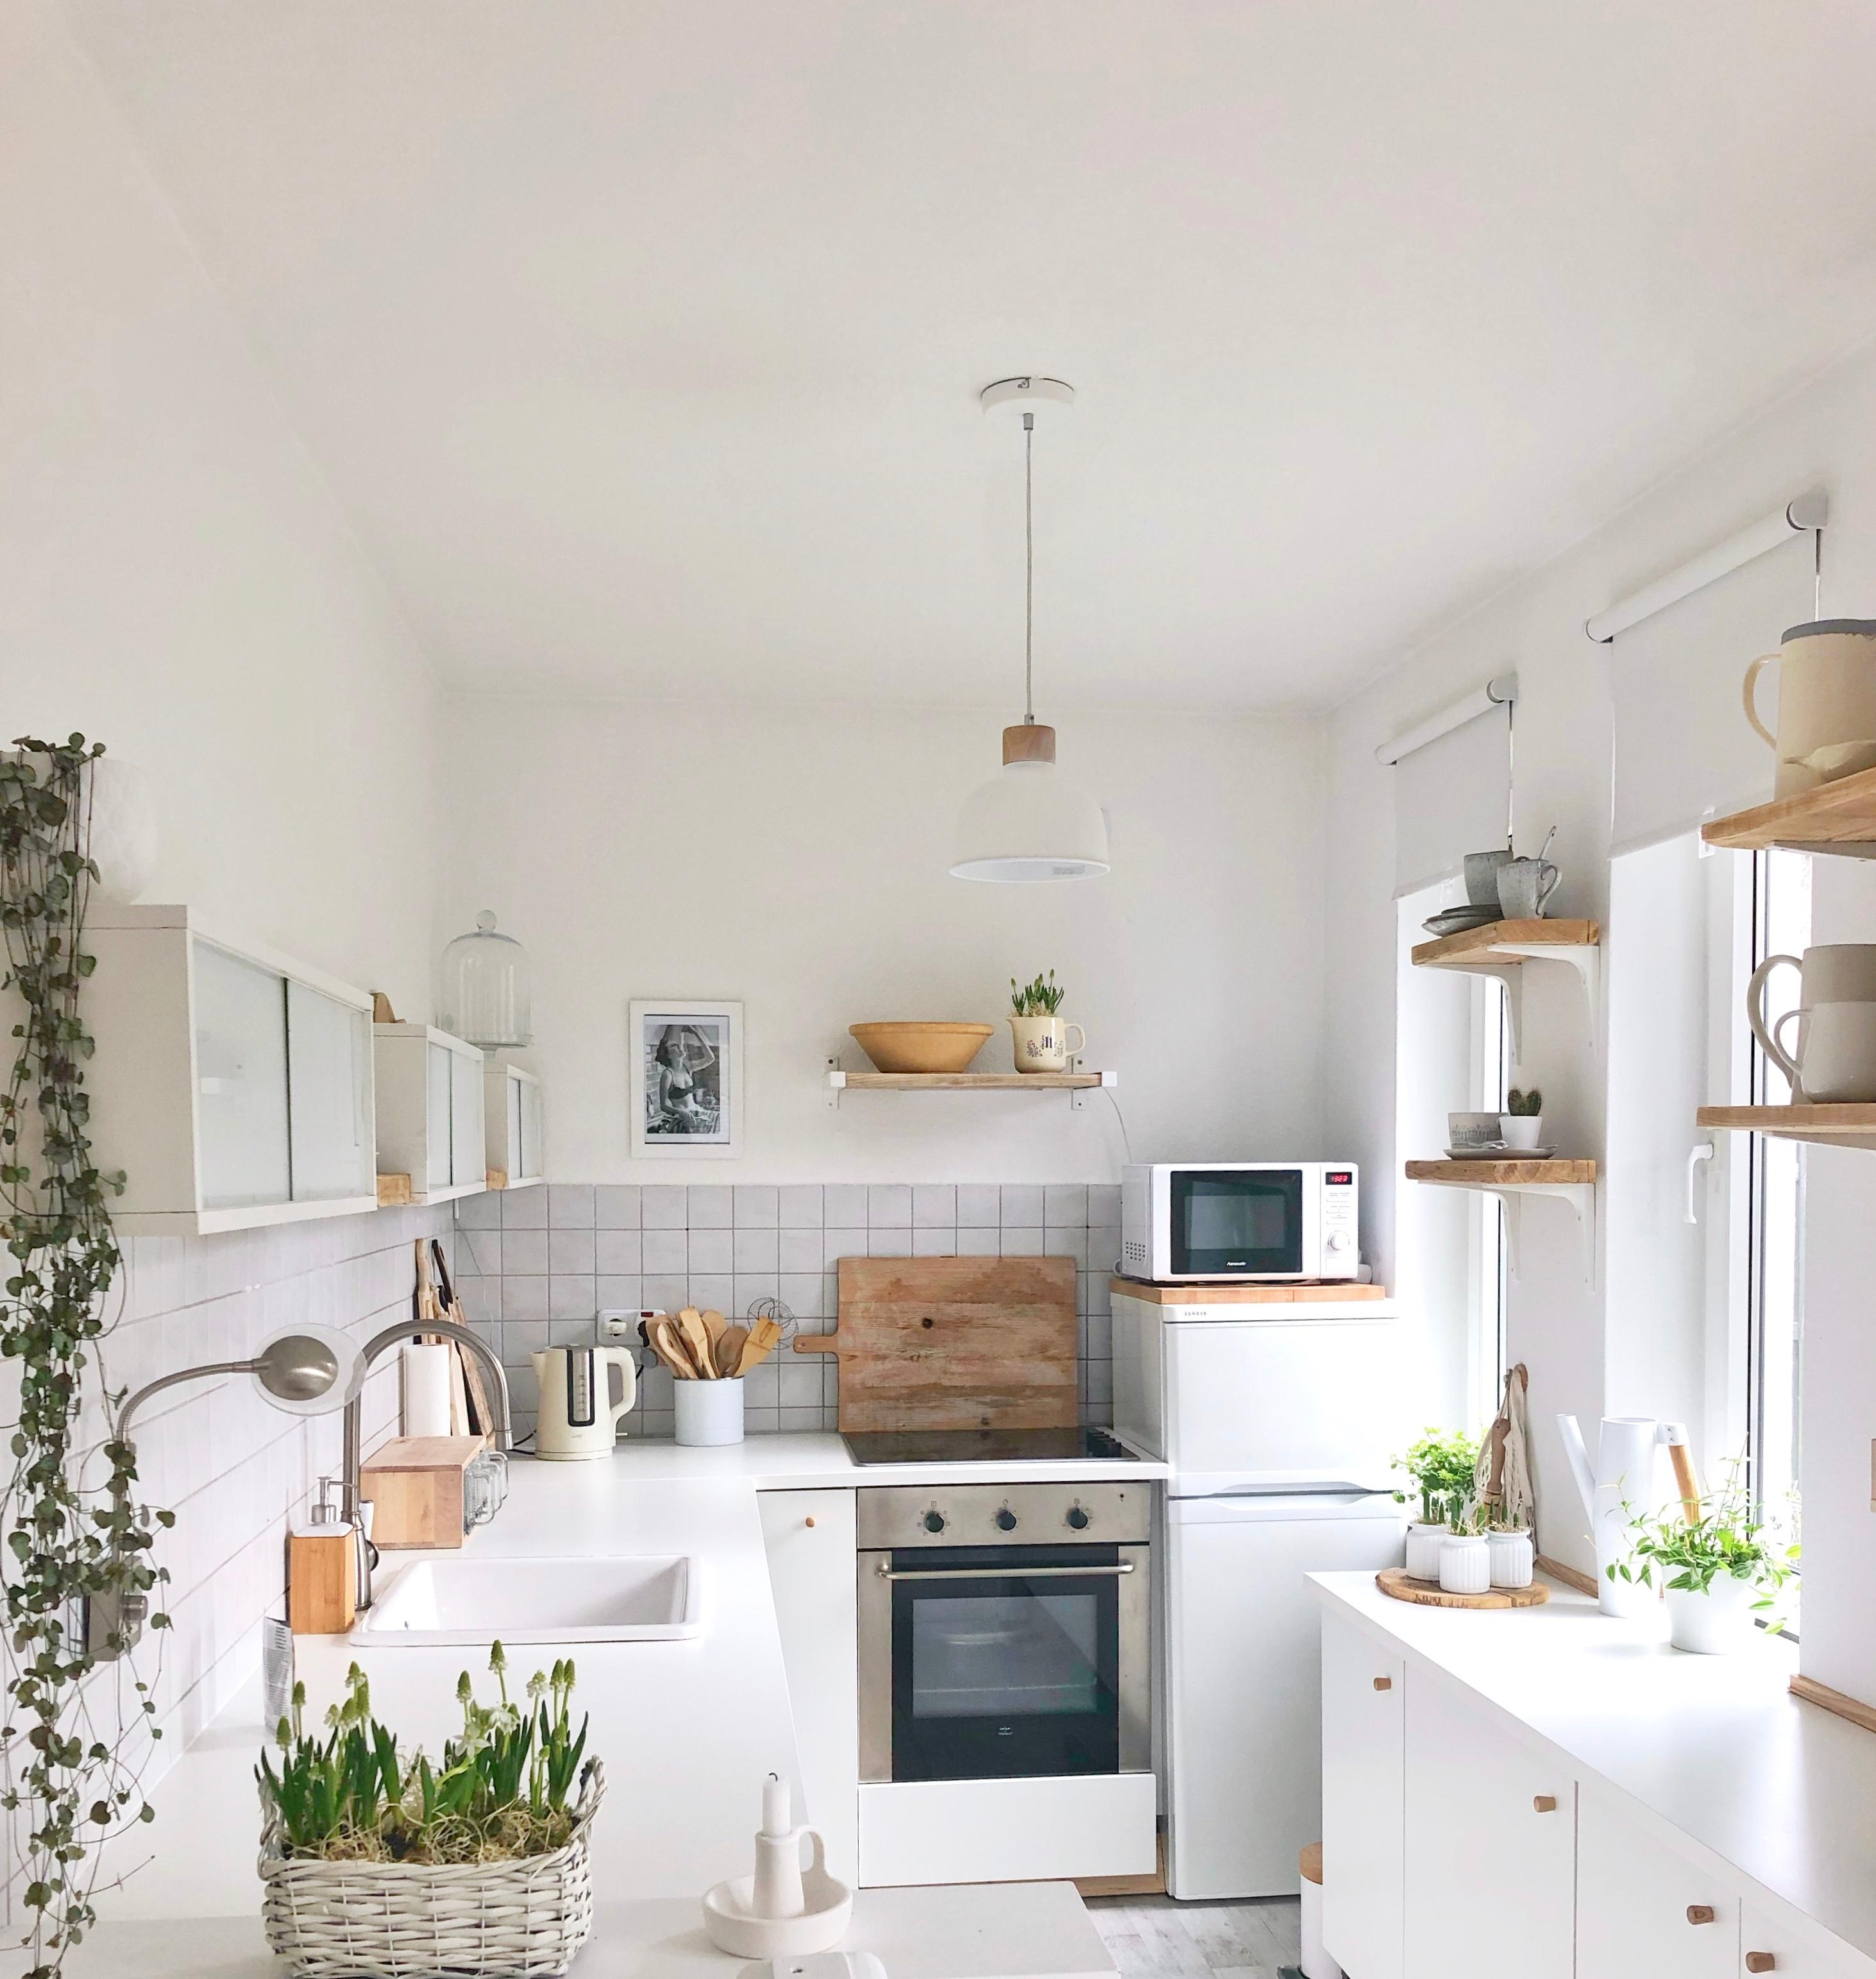 #kitchen #kitchenlove #whitekitchen